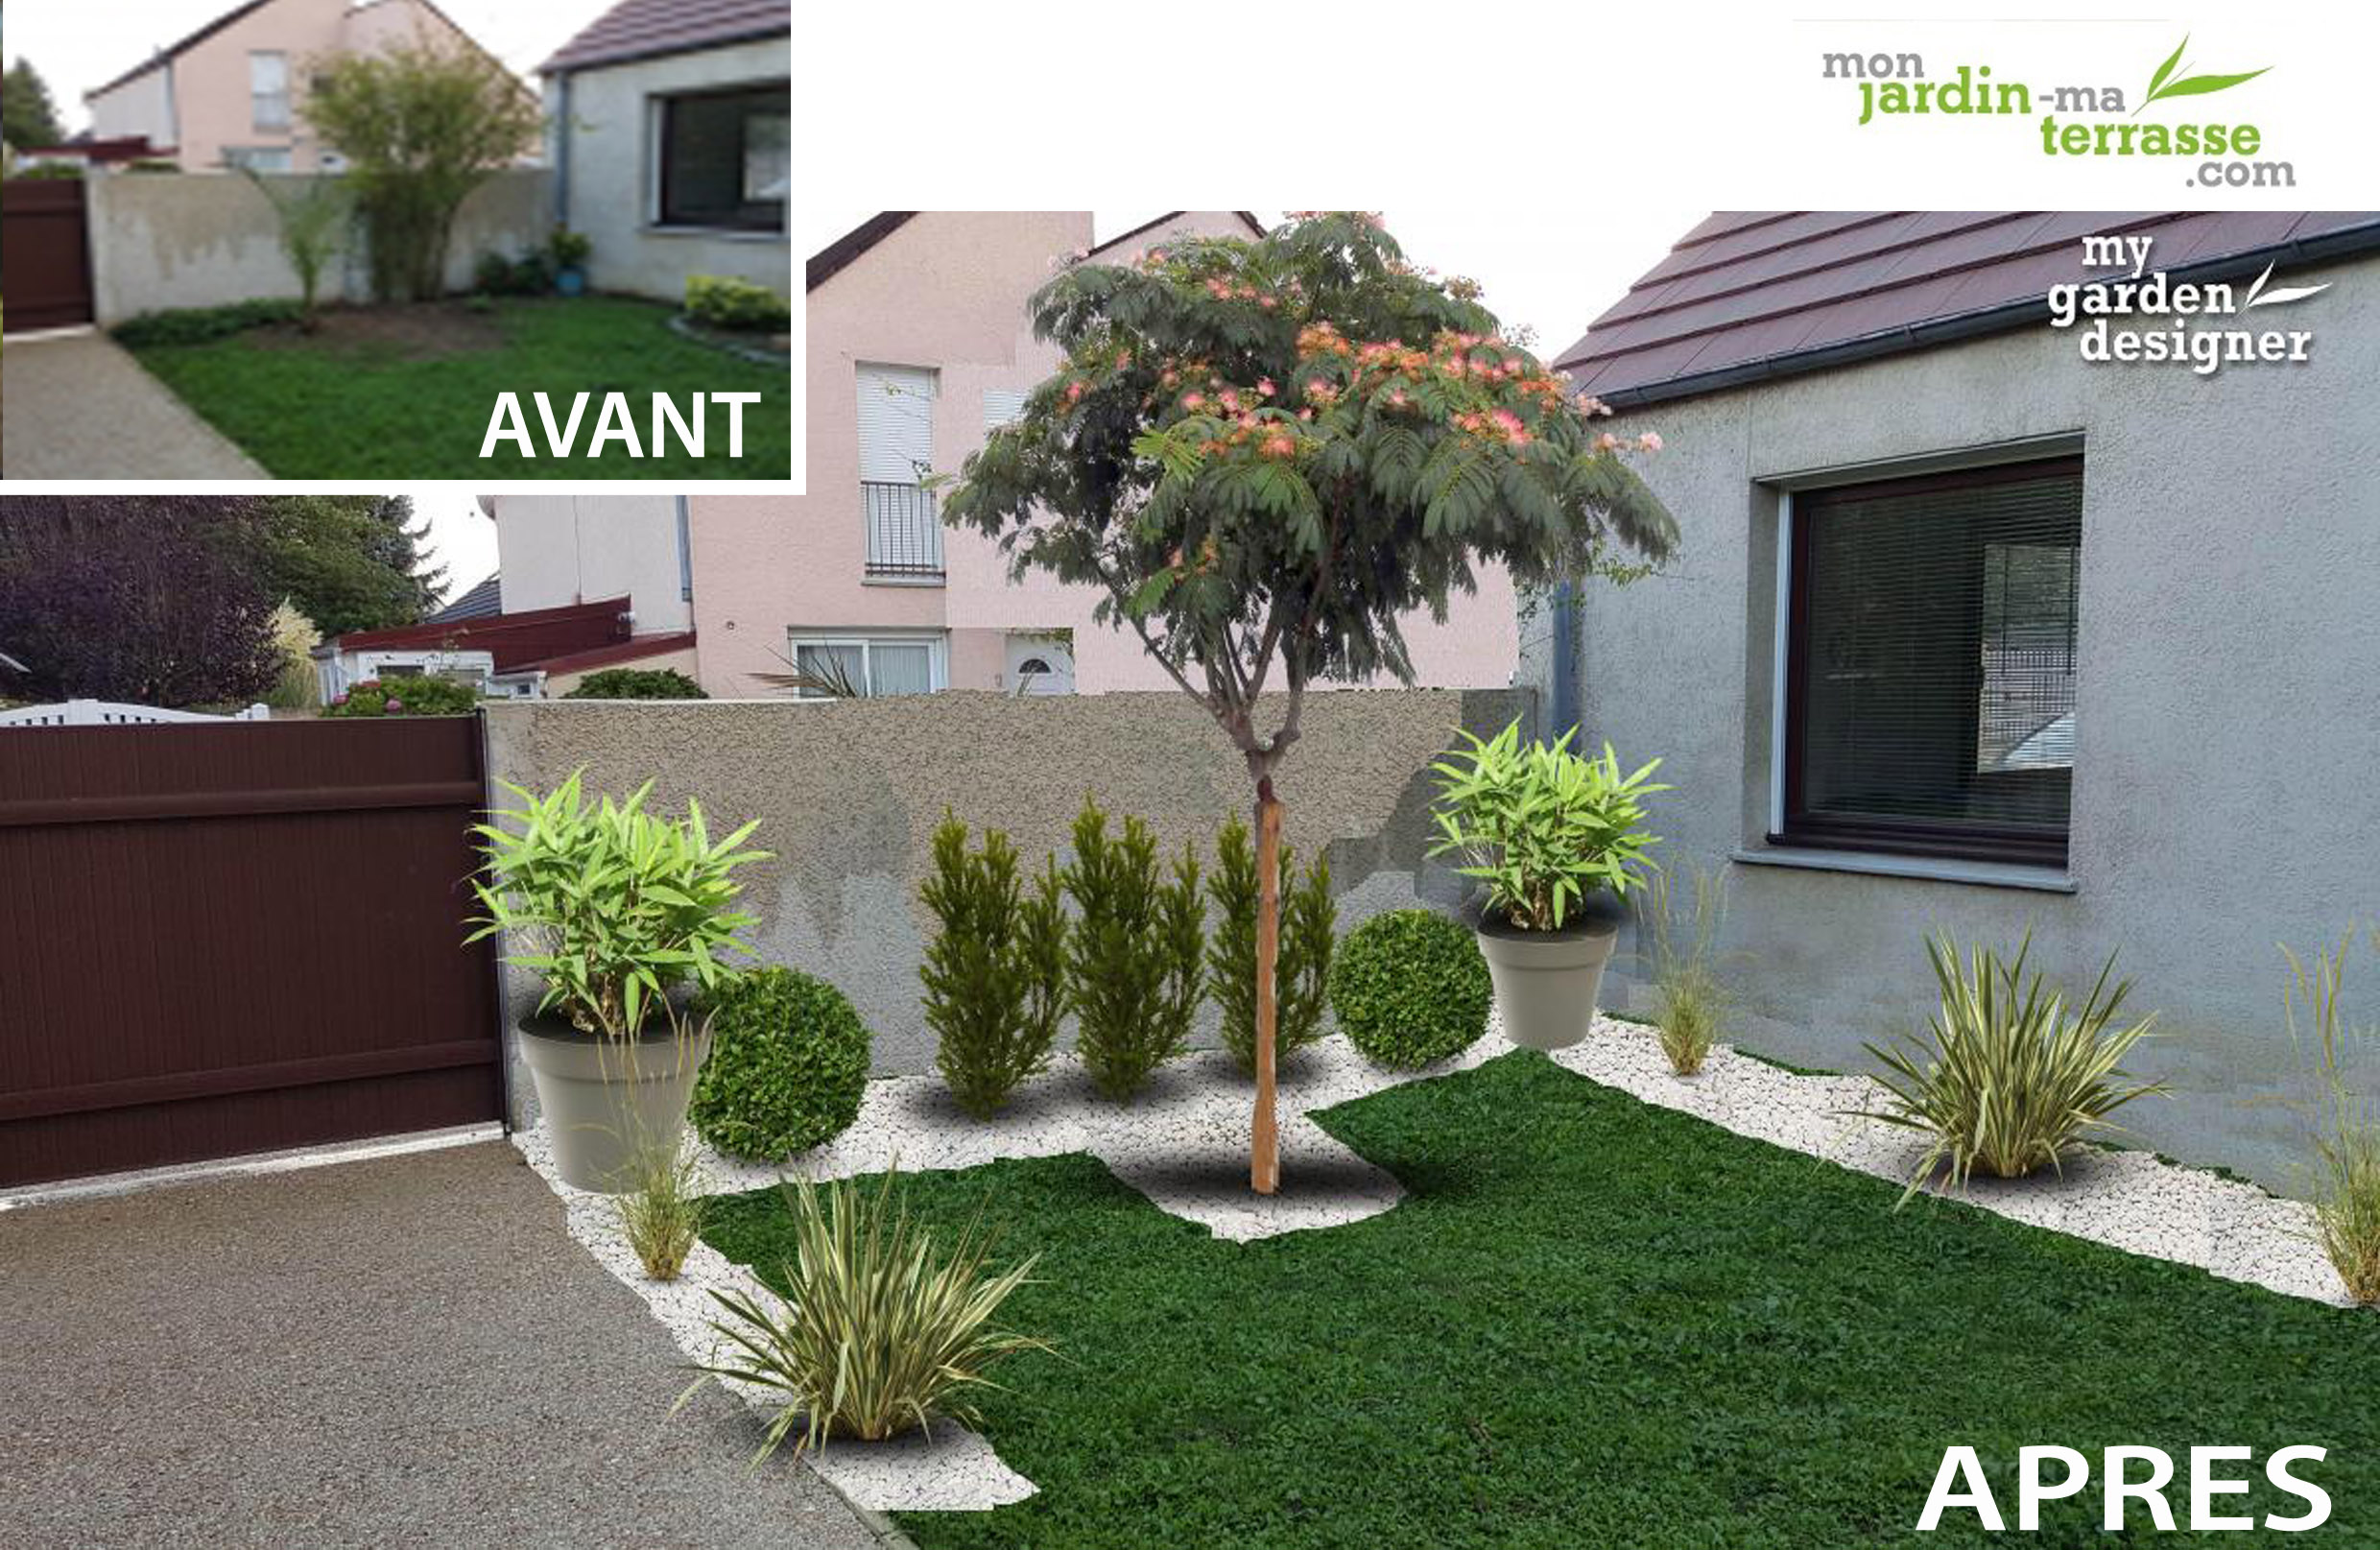 Am nager un petit jardin de 30m monjardin for Site amenagement jardin